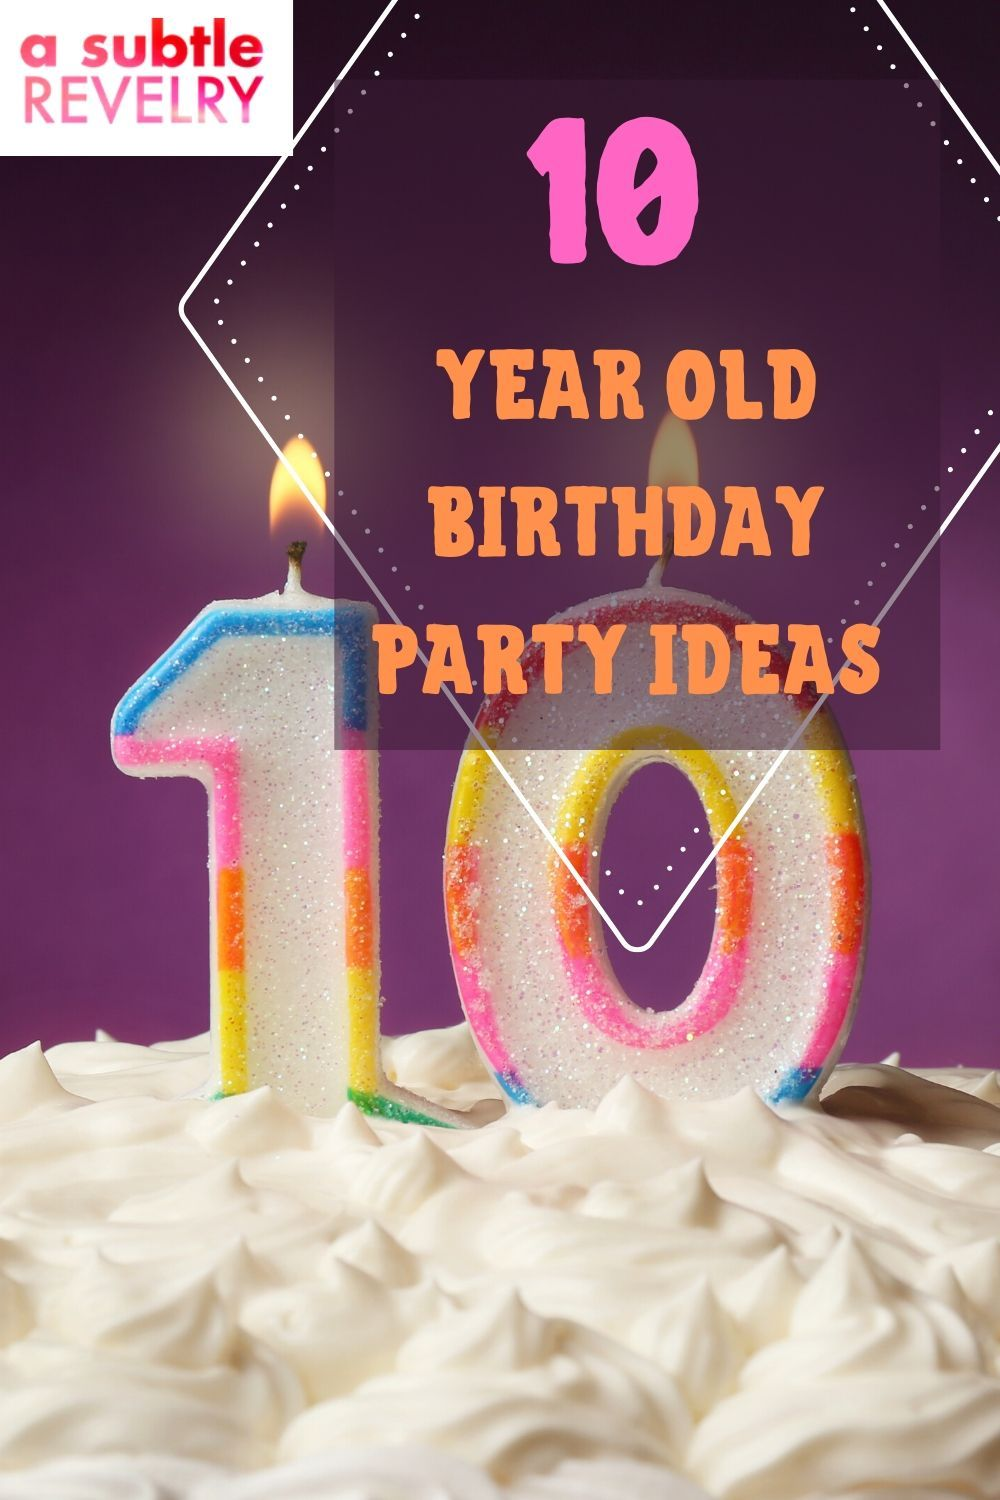 10 Nice Birthday Party Ideas For 13 Year Old Boy 40th Birthday Party Ideas For At Home Tags 40th Boy Birthday Parties Birthday Party Food Summer Birthday Party